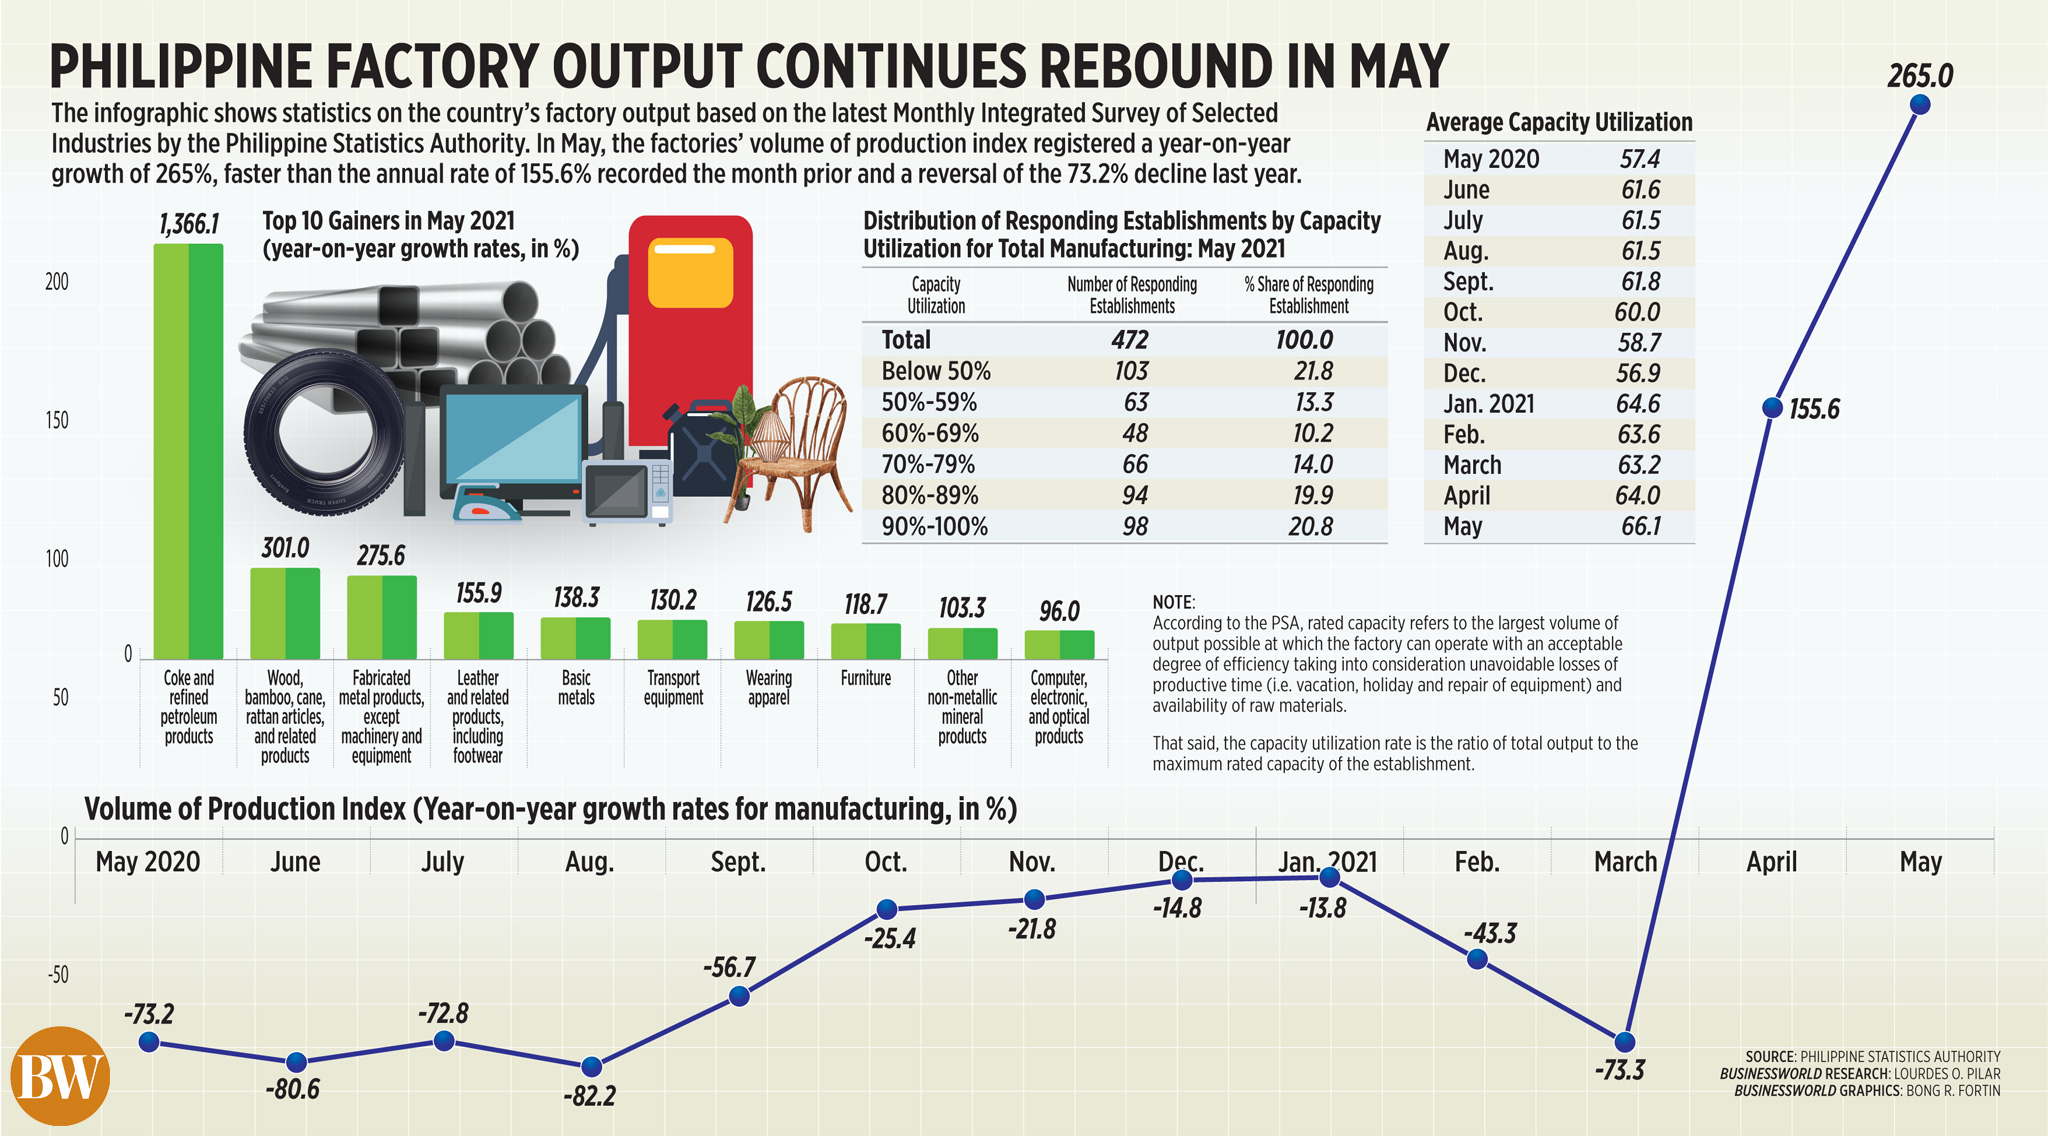 Philippine factory output continues rebound in May (2021)